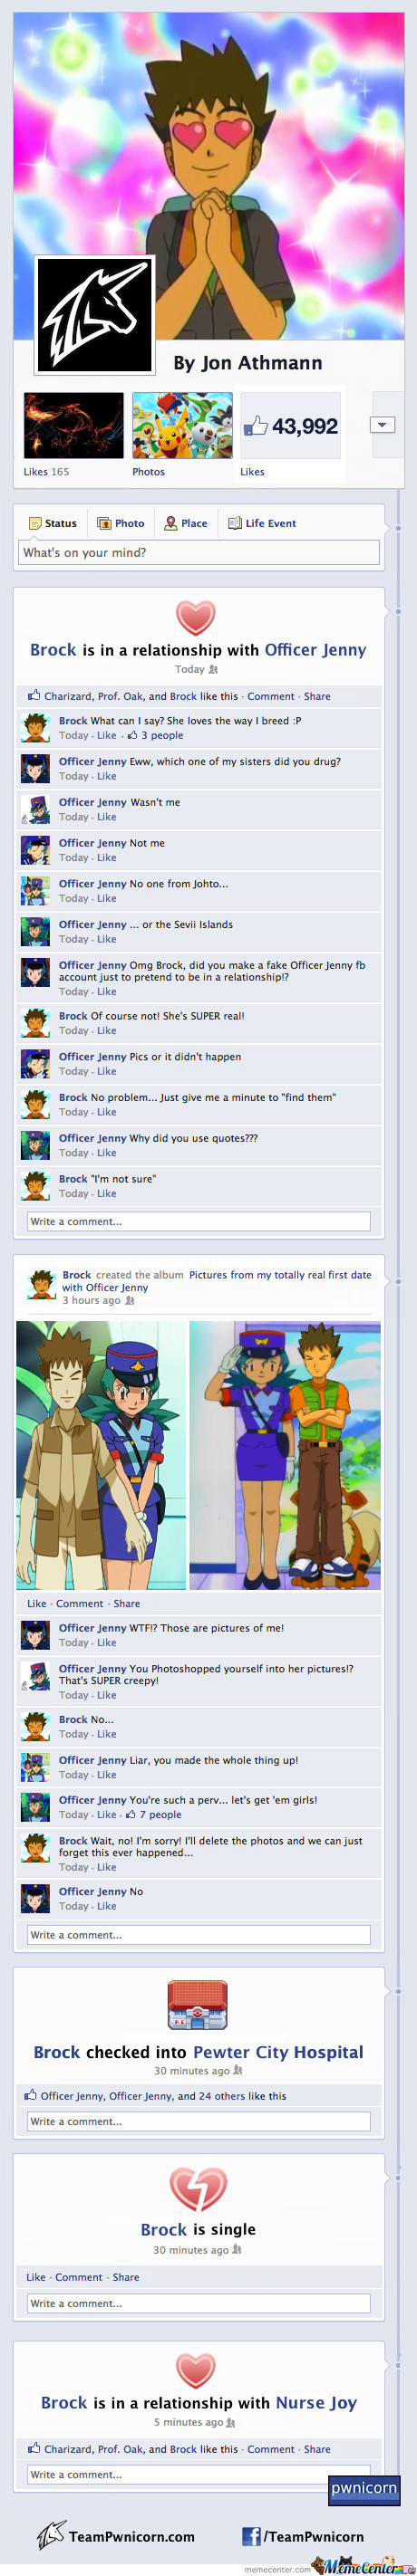 Brock And Officer Jenny Make It Facebook Official